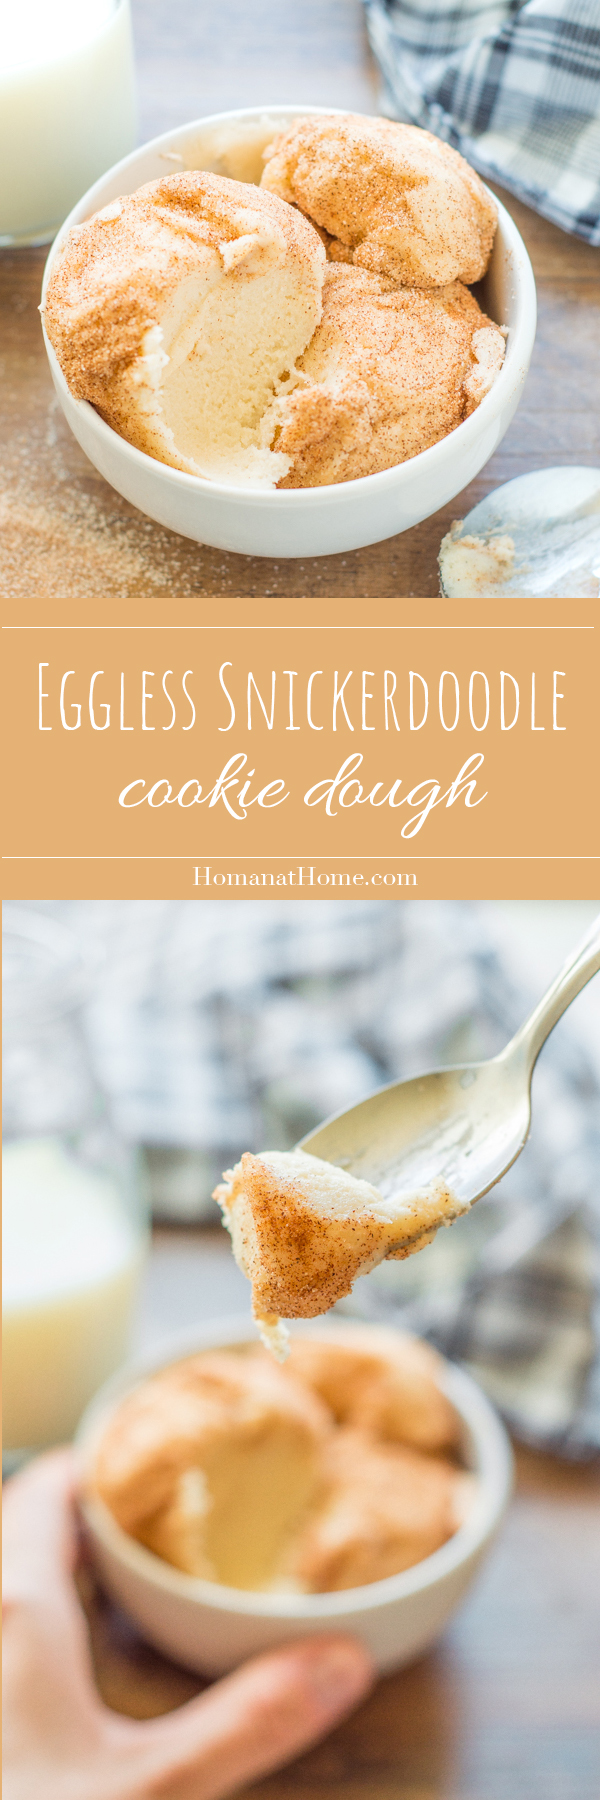 Eggless Snickerdoodle Cookie Dough | Homan at Home